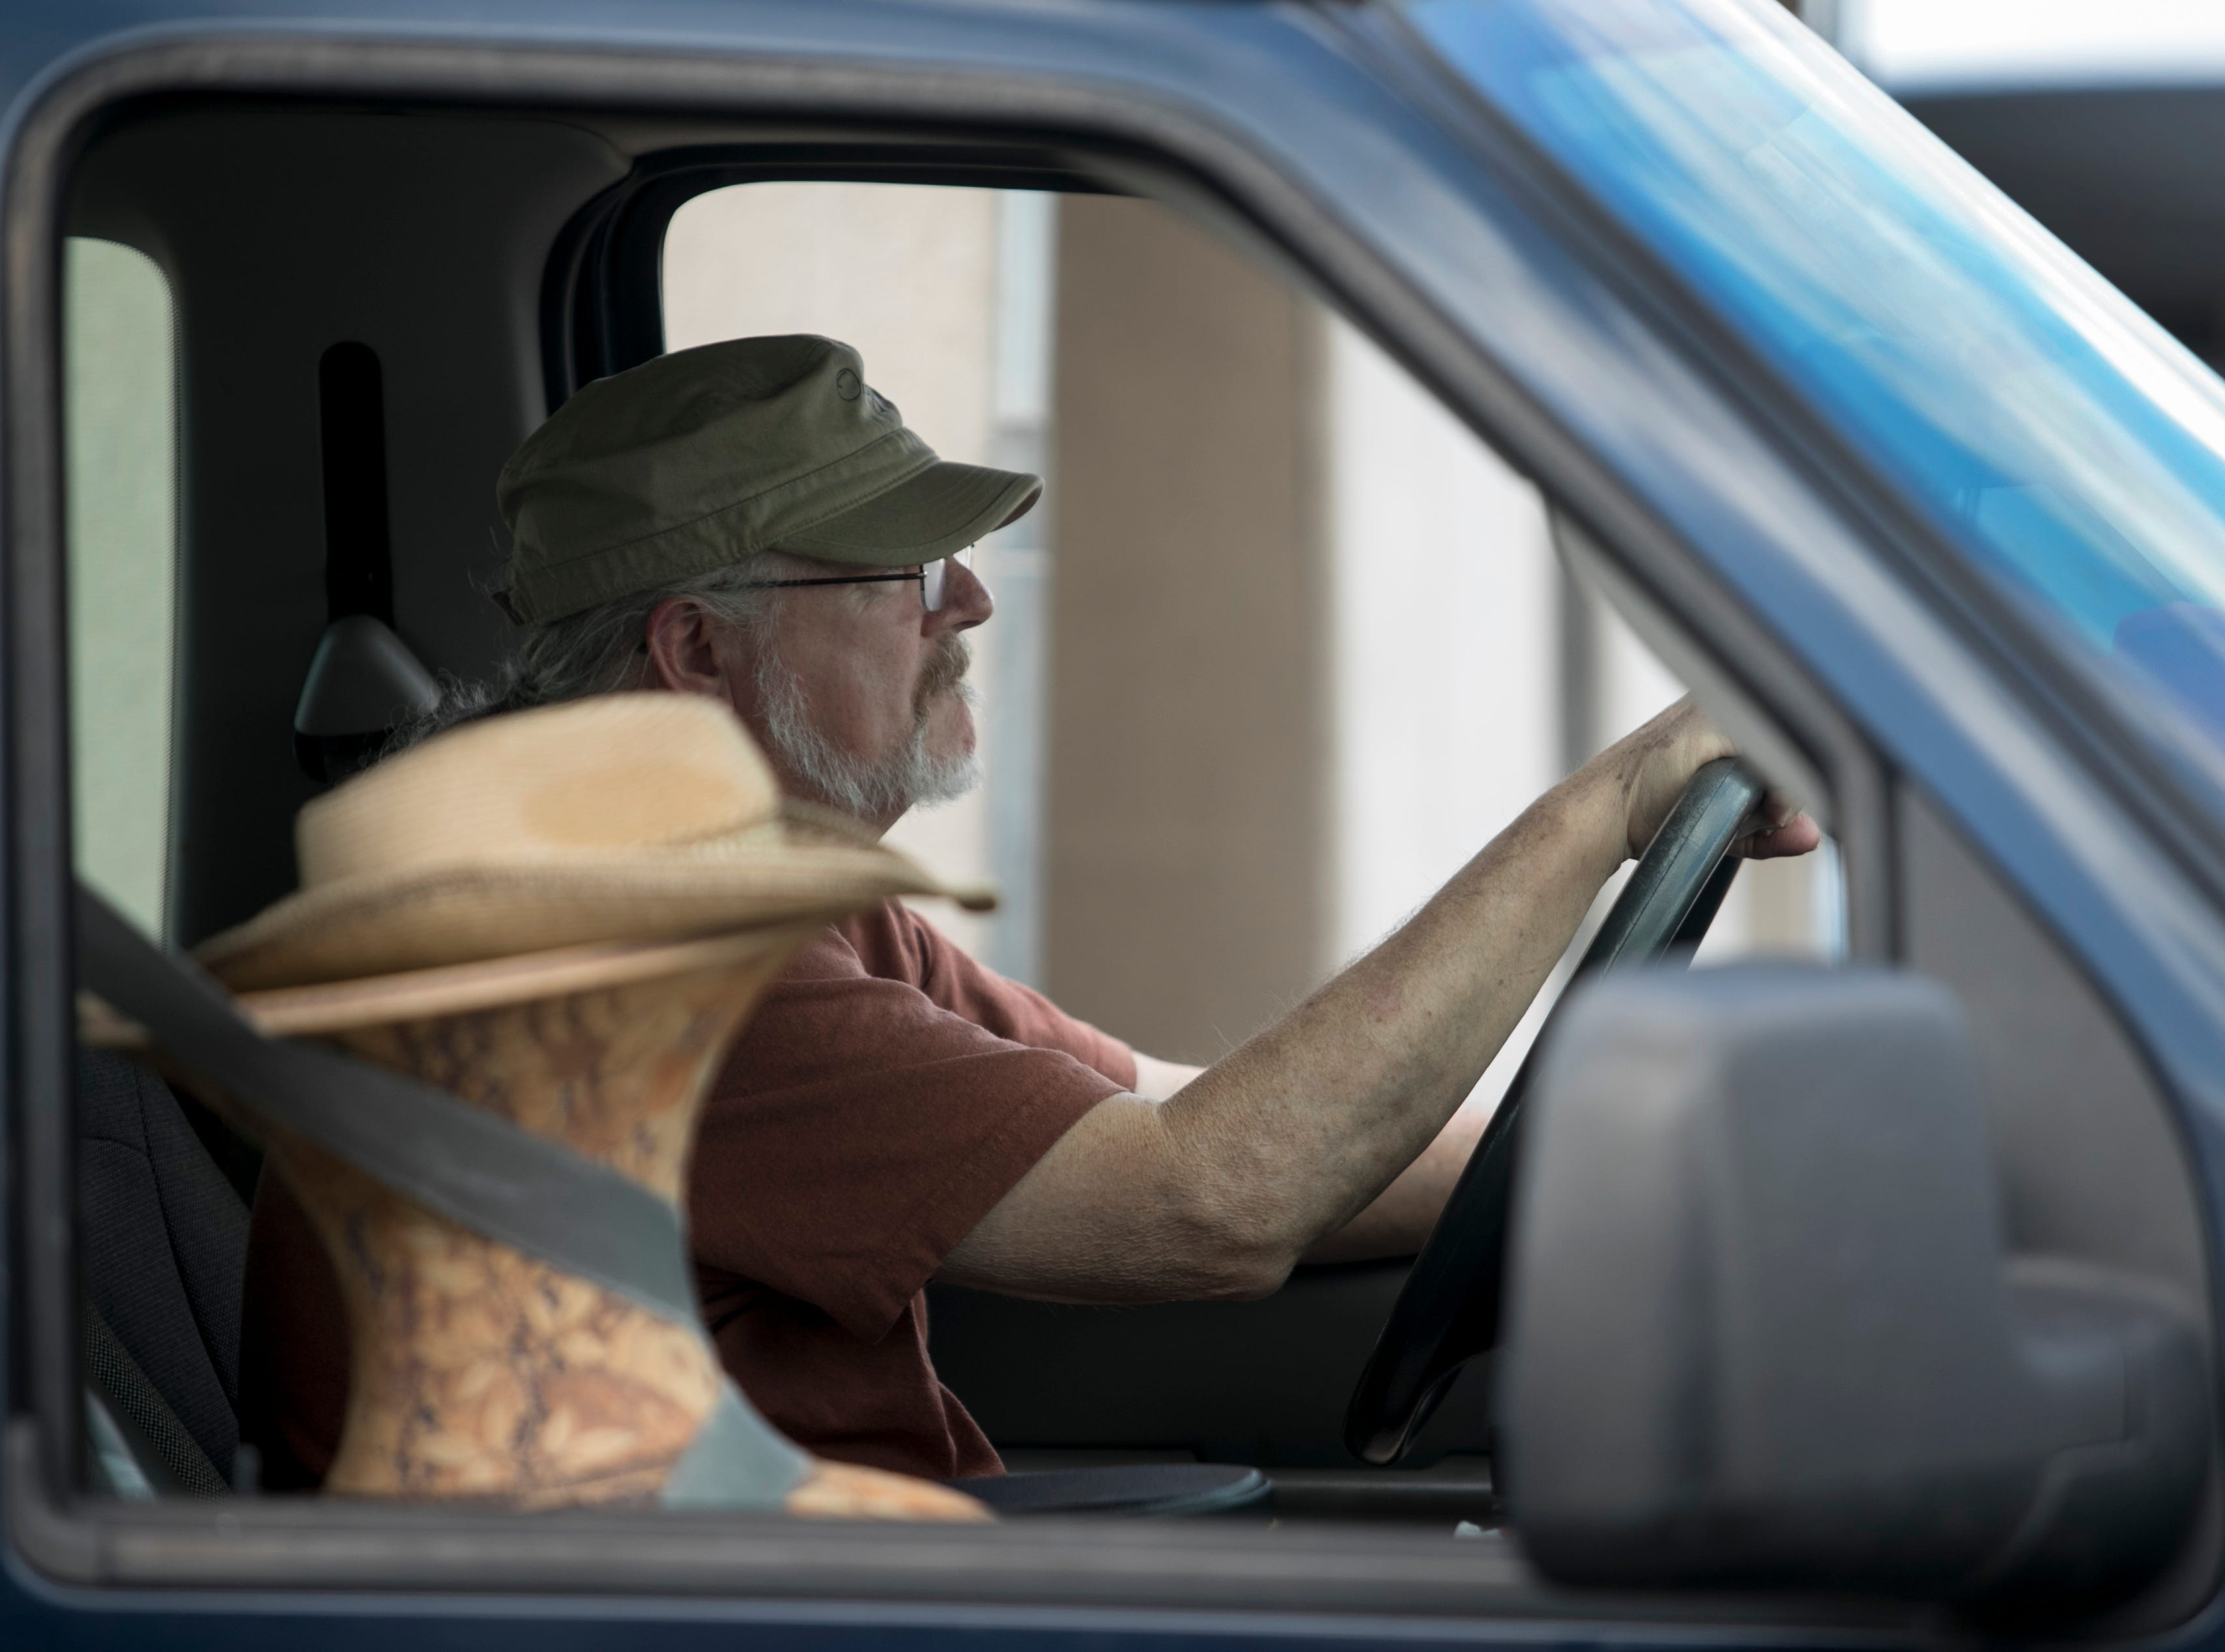 Don McWorter of Carrolton, Ga., pulls into ArtFest with one of his pottery pieces riding shotgun on Friday, Feb 1, 2019, in downtown Fort Myers. Artists were busy setting up Friday morning to prepare for the Opening Night event Friday night and the festival on Saturday and Sunday.